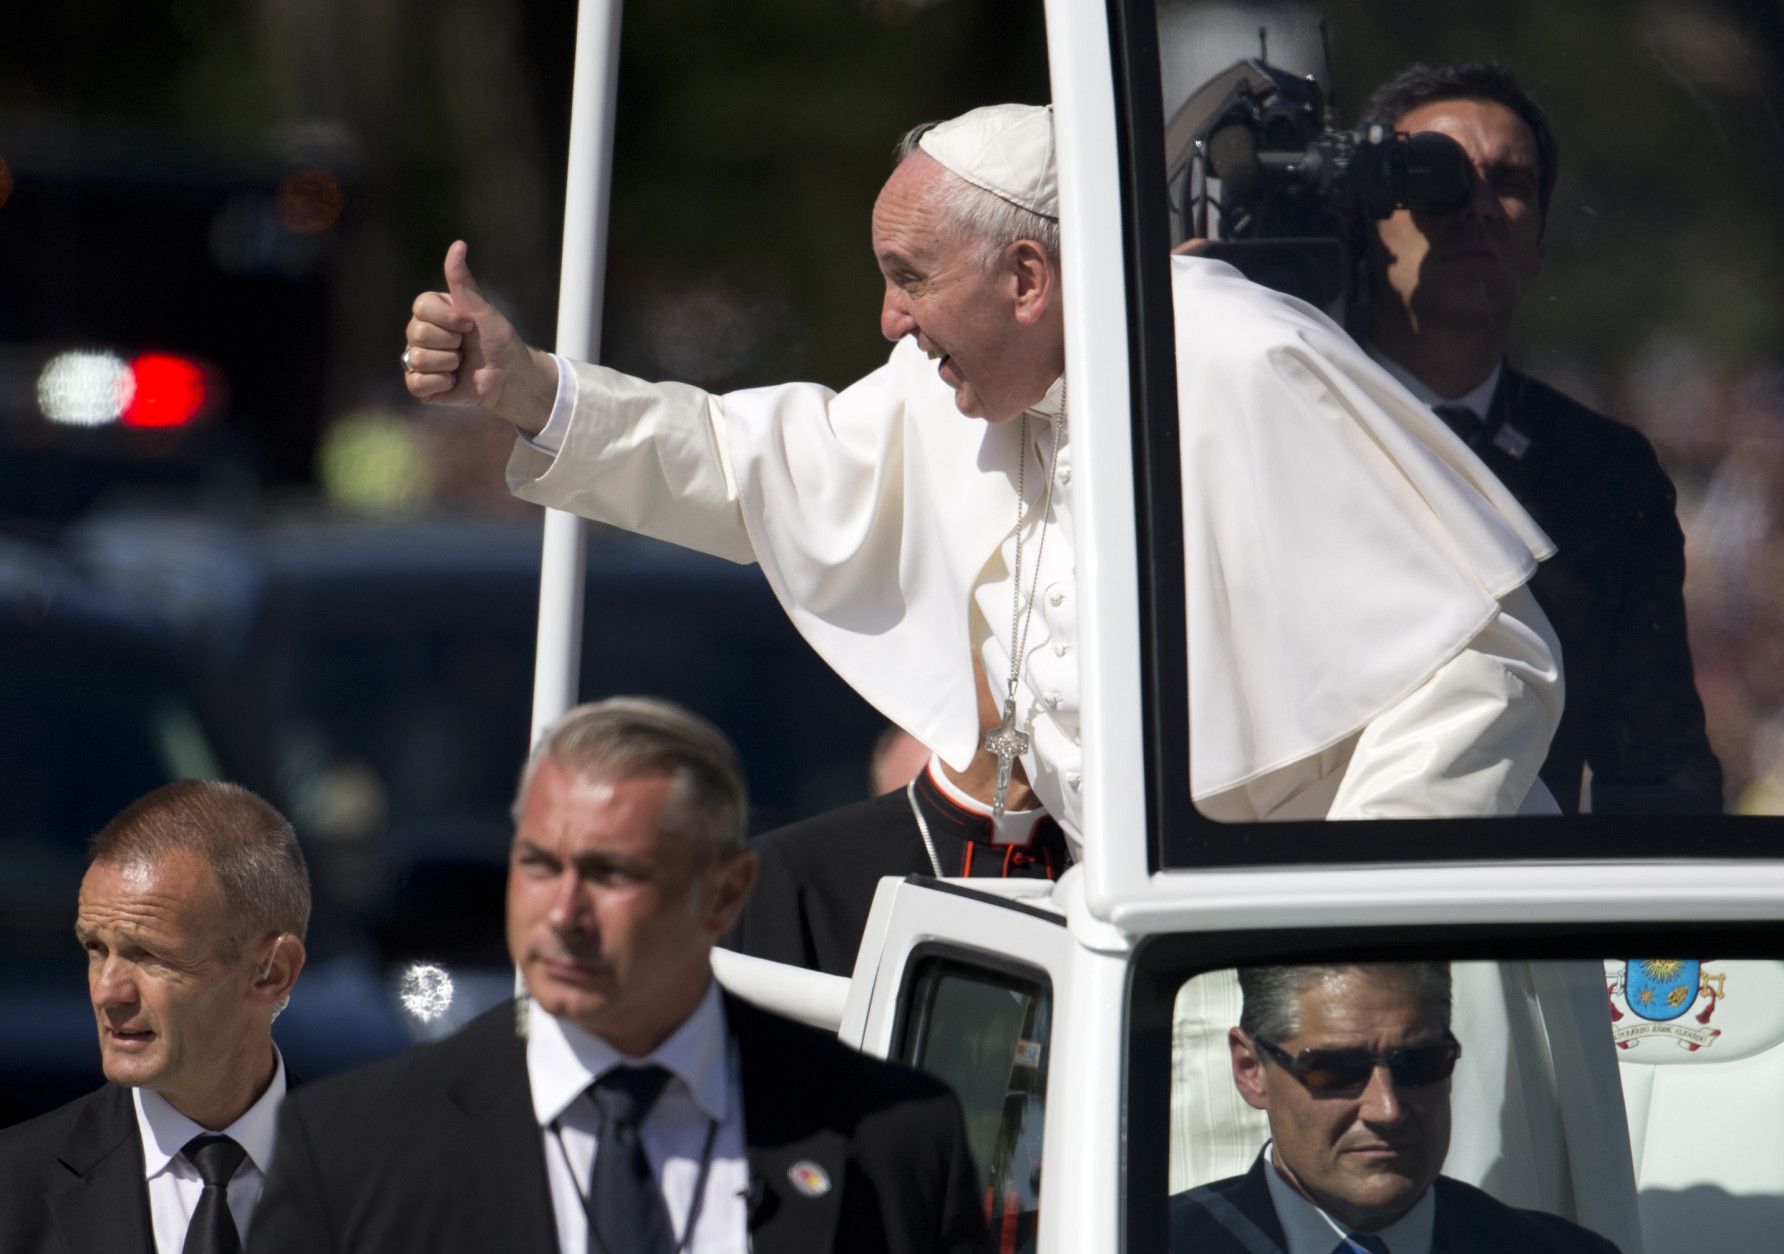 Pope Francis give the thumbs-up from the popemobile during a parade around the Ellipse near the White House in Washington, Wednesday, Sept. 23, 2015. (AP Photo/Carolyn Kaster)